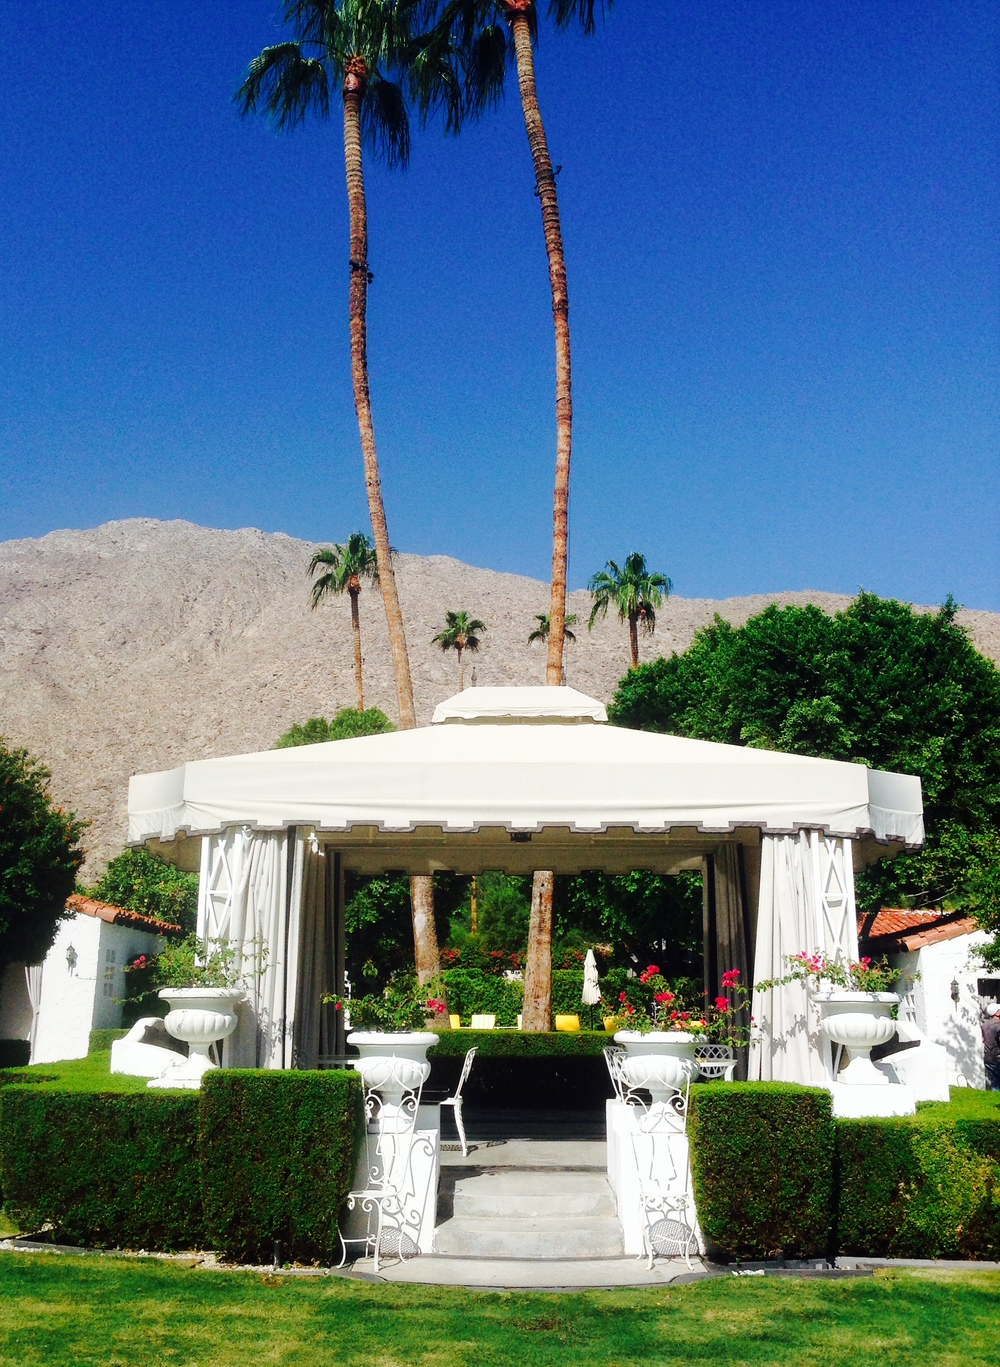 Stunning grounds at the Viceroy Palm Springs